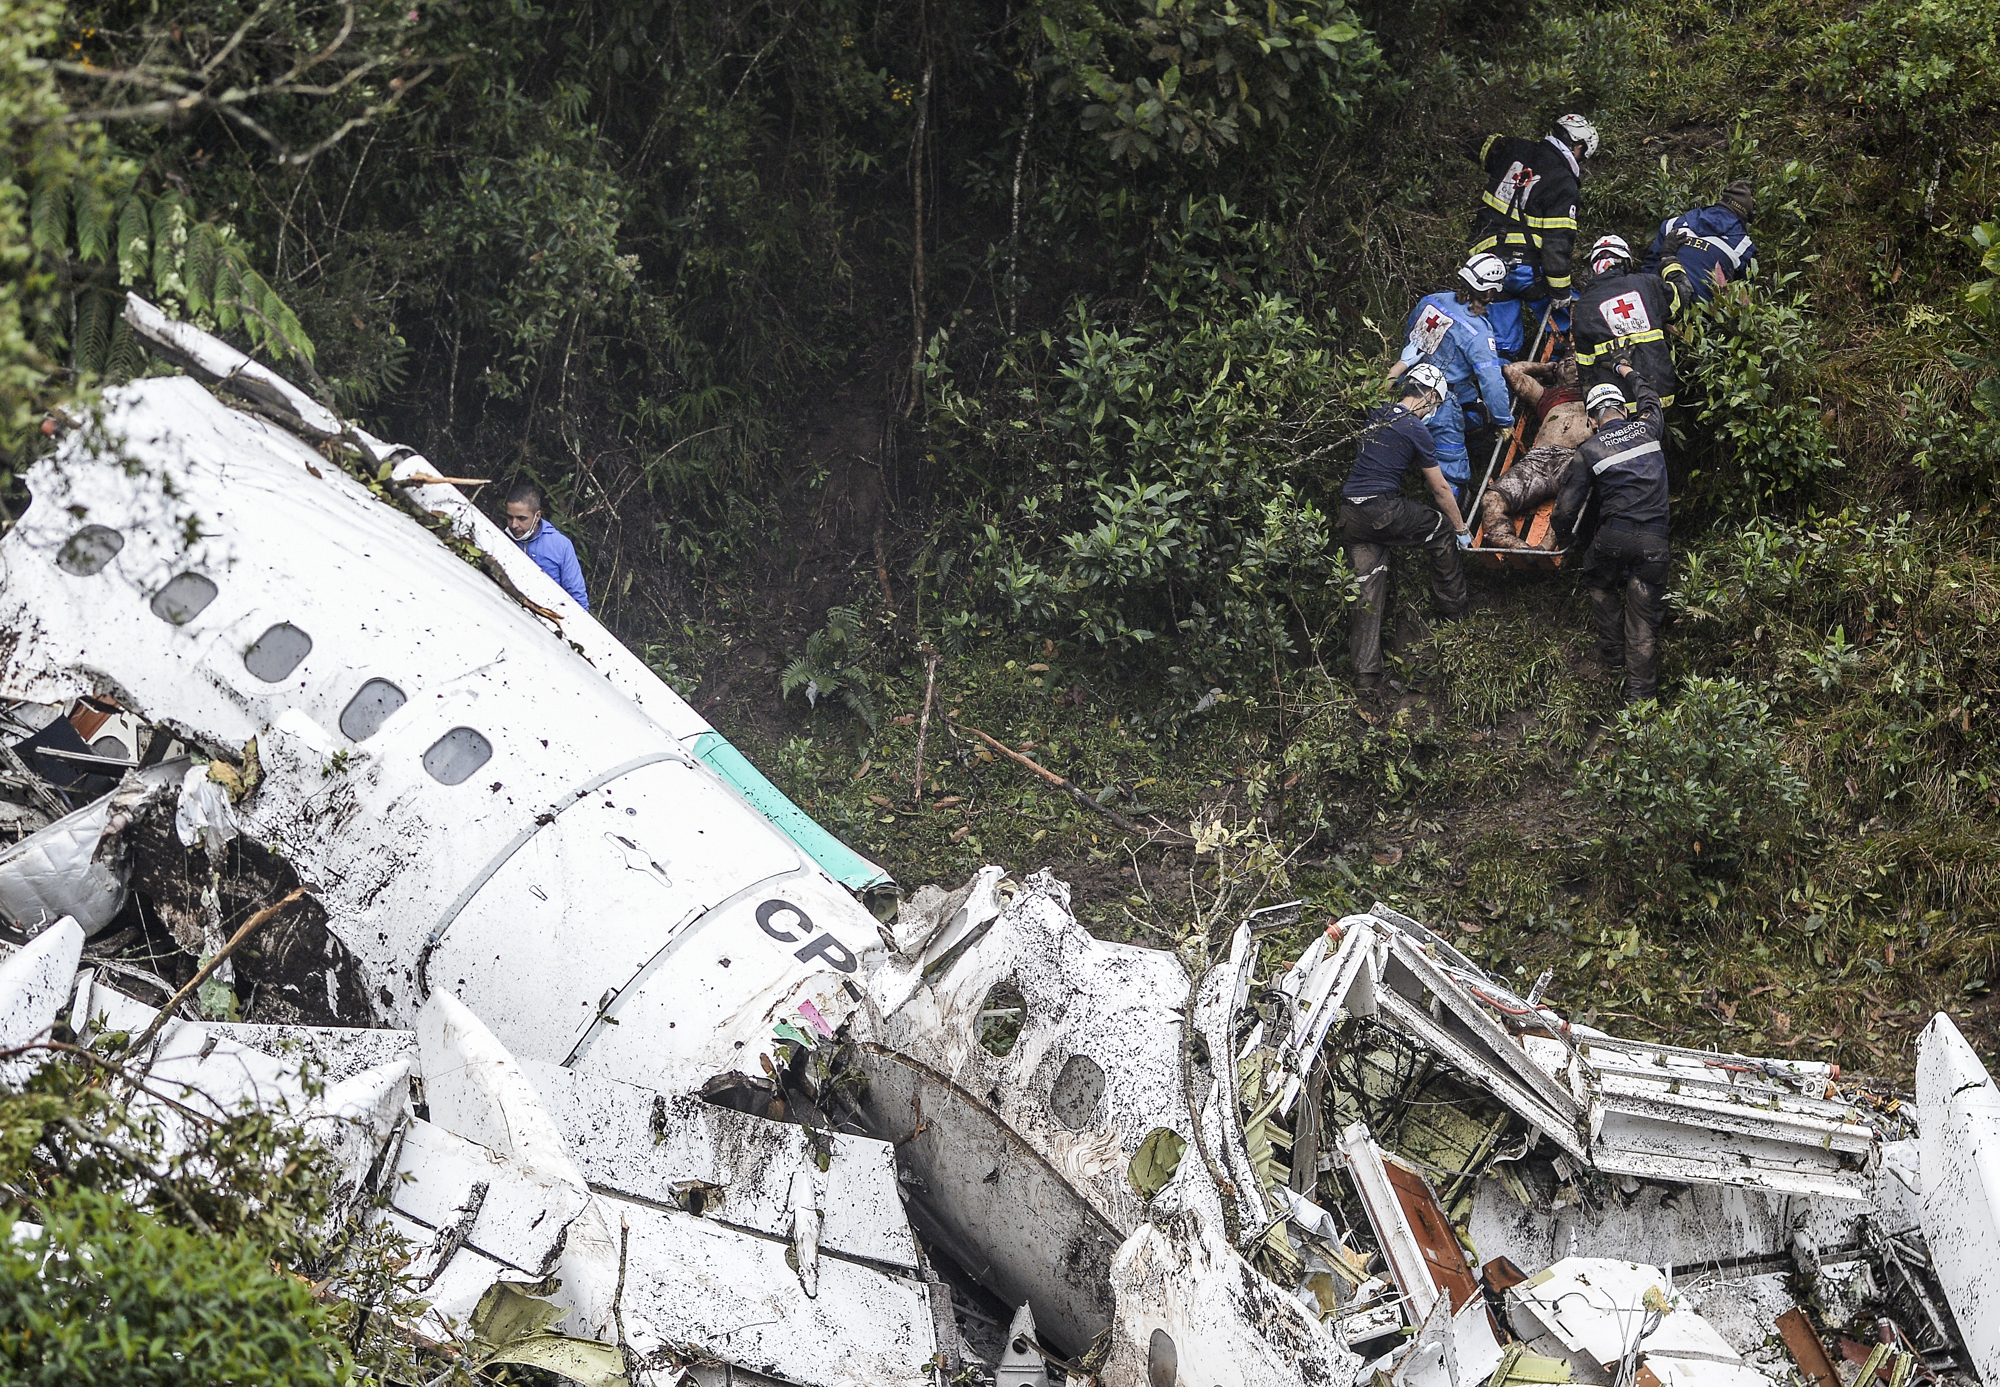 TOPSHOT - EDITORS NOTE: Graphic content / Rescue and forensic teams recover the bodies of victims of the LAMIA airlines charter that crashed in the mountains of Cerro Gordo, municipality of La Union, Colombia, on November 29, 2016 carrying members of the Brazilian football team Chapecoense Real. A charter plane carrying the Brazilian football team crashed in the mountains in Colombia late Monday, killing as many as 75 people, officials said. / AFP / STR / Raul ARBOLEDA / GRAPHIC CONTENT (Photo credit should read RAUL ARBOLEDA/AFP/Getty Images)